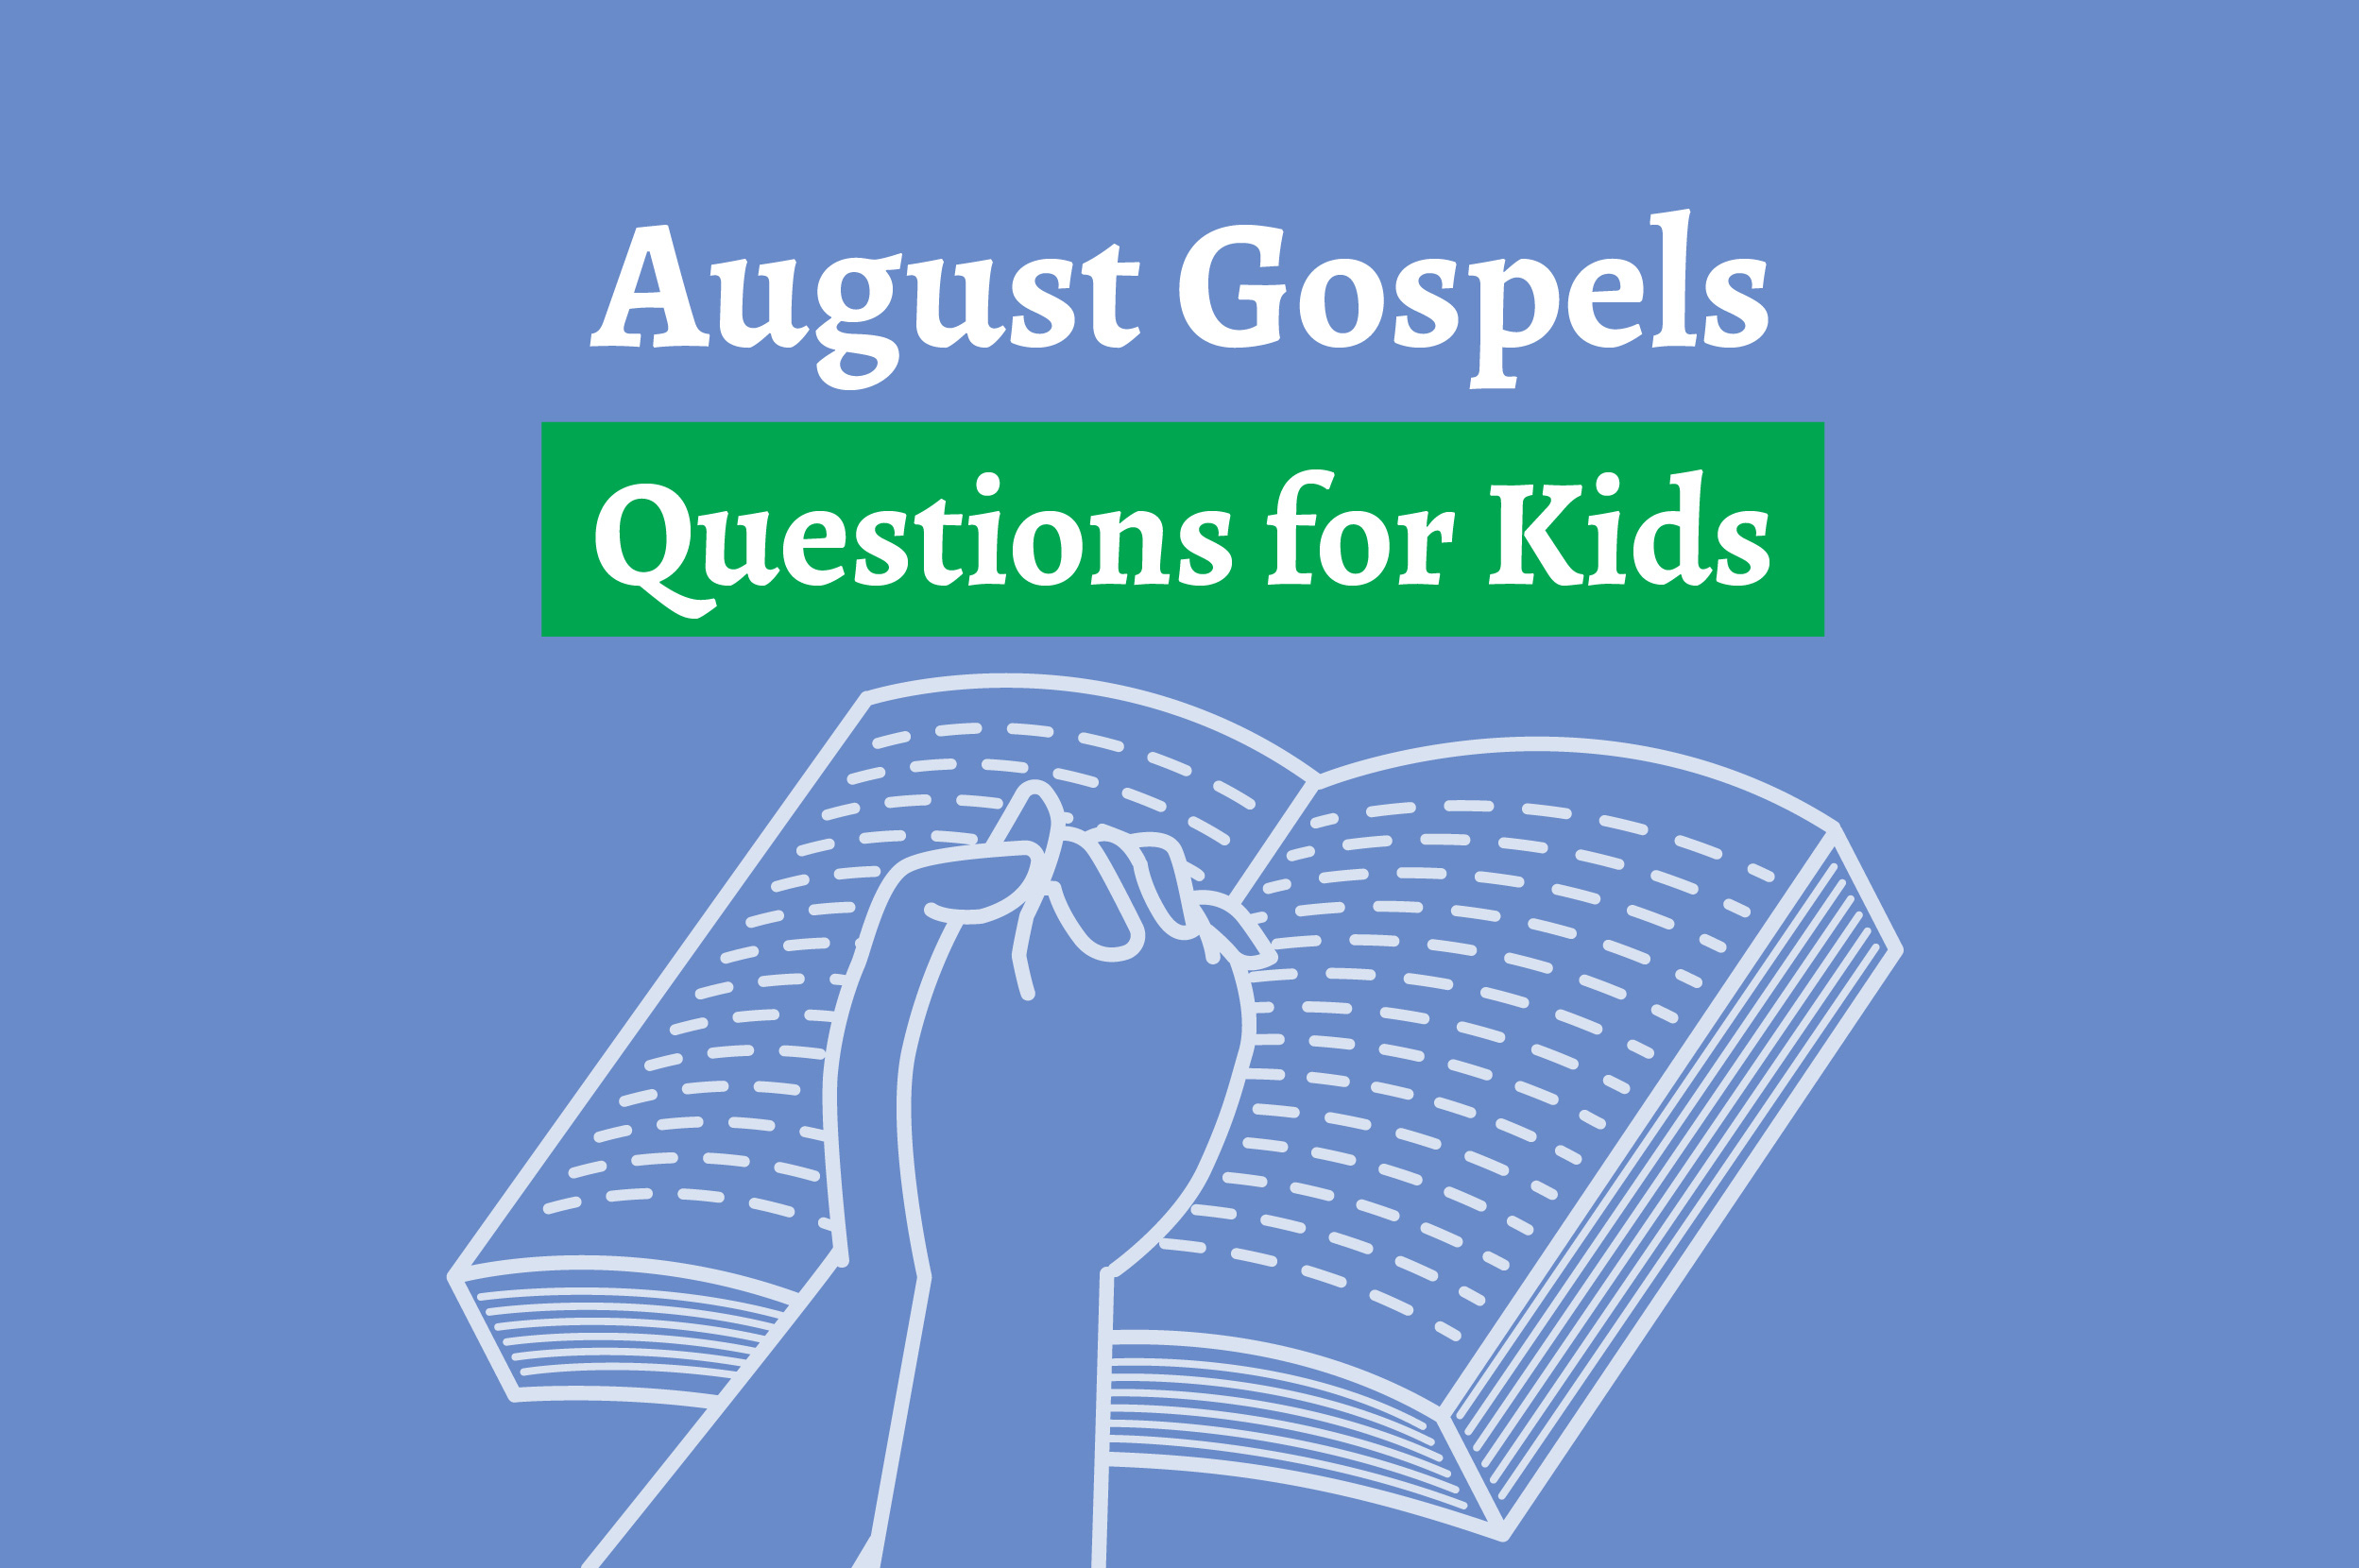 August Gospels: Questions to ask your kids